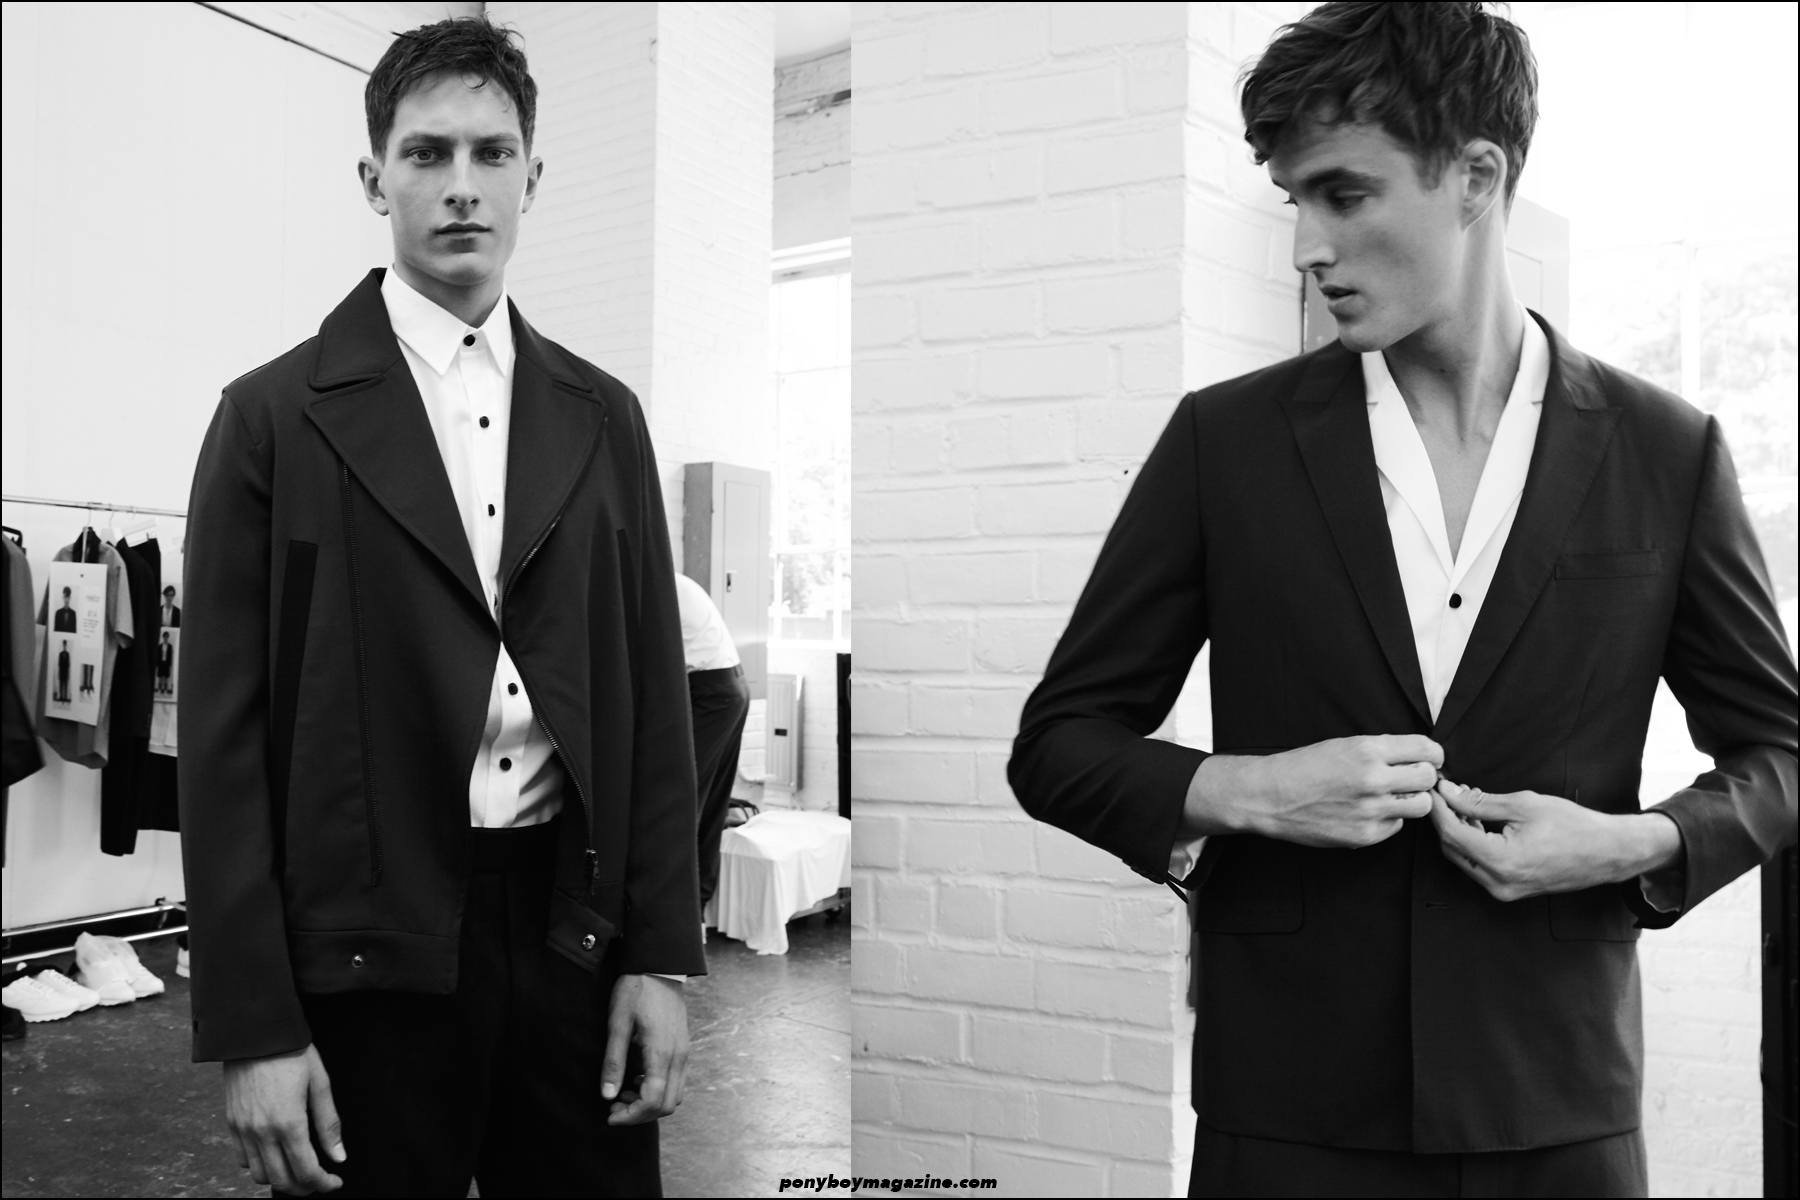 Model James Smith, photographed by Alexander Thompson, backstage at Carlos Campos S/S16, for Ponyboy magazine NY.